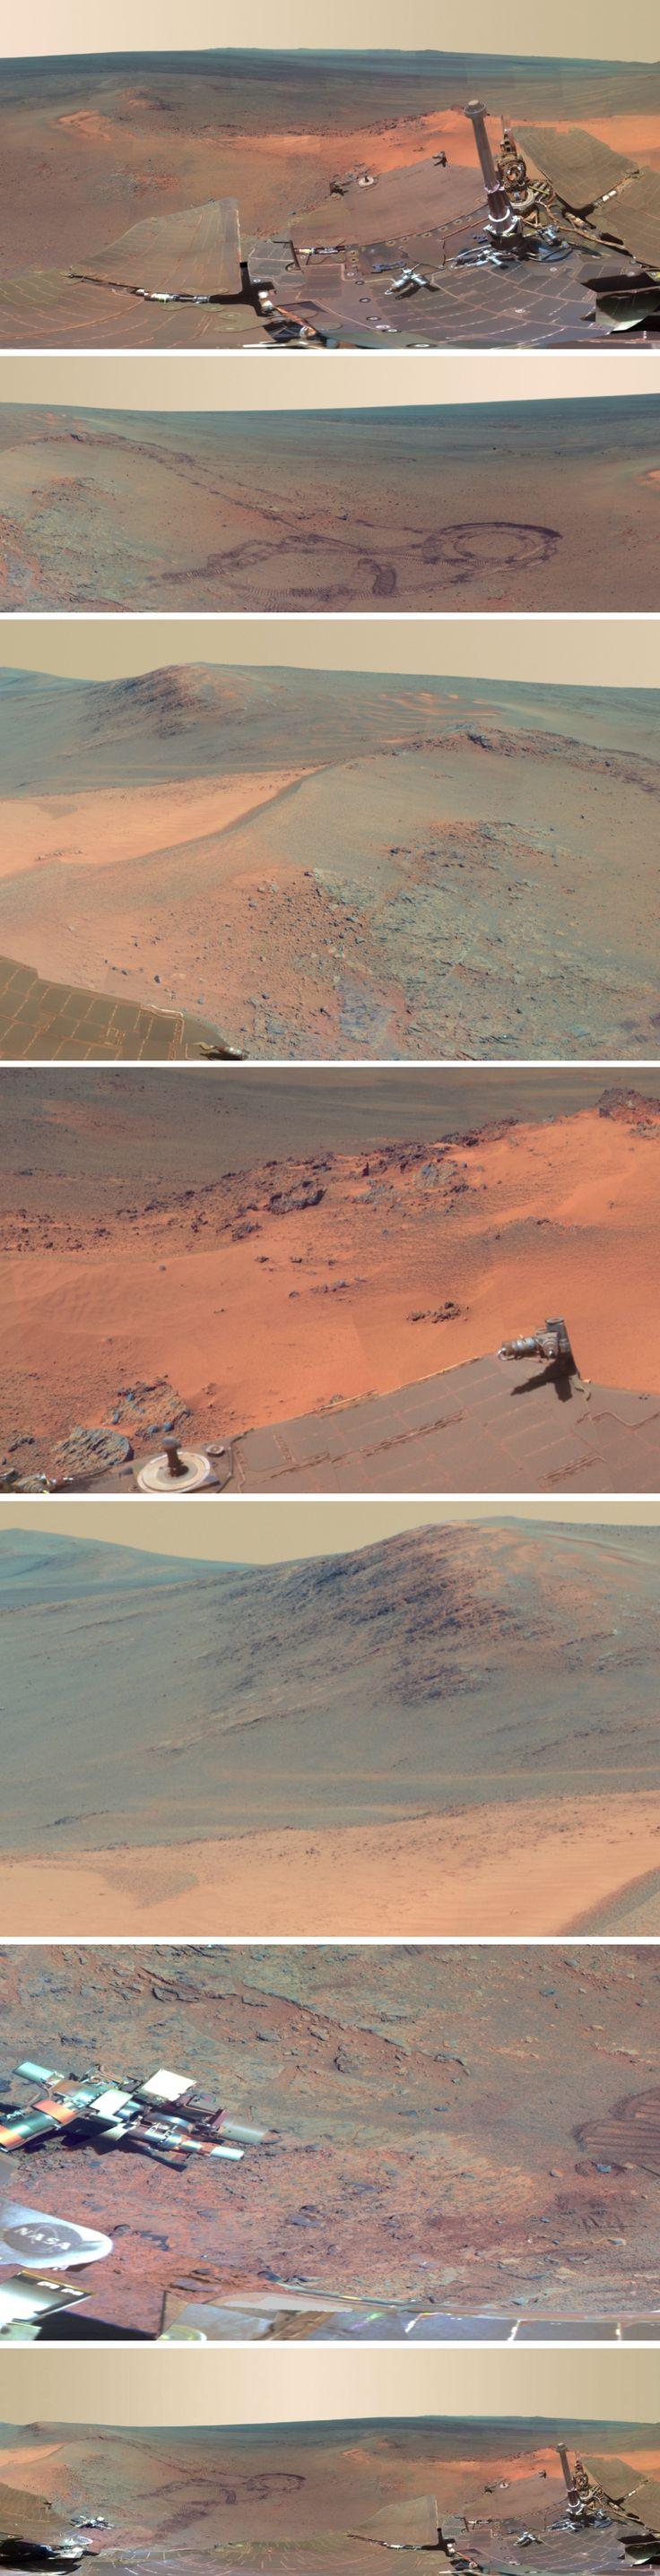 Mars from the rover Opportunity